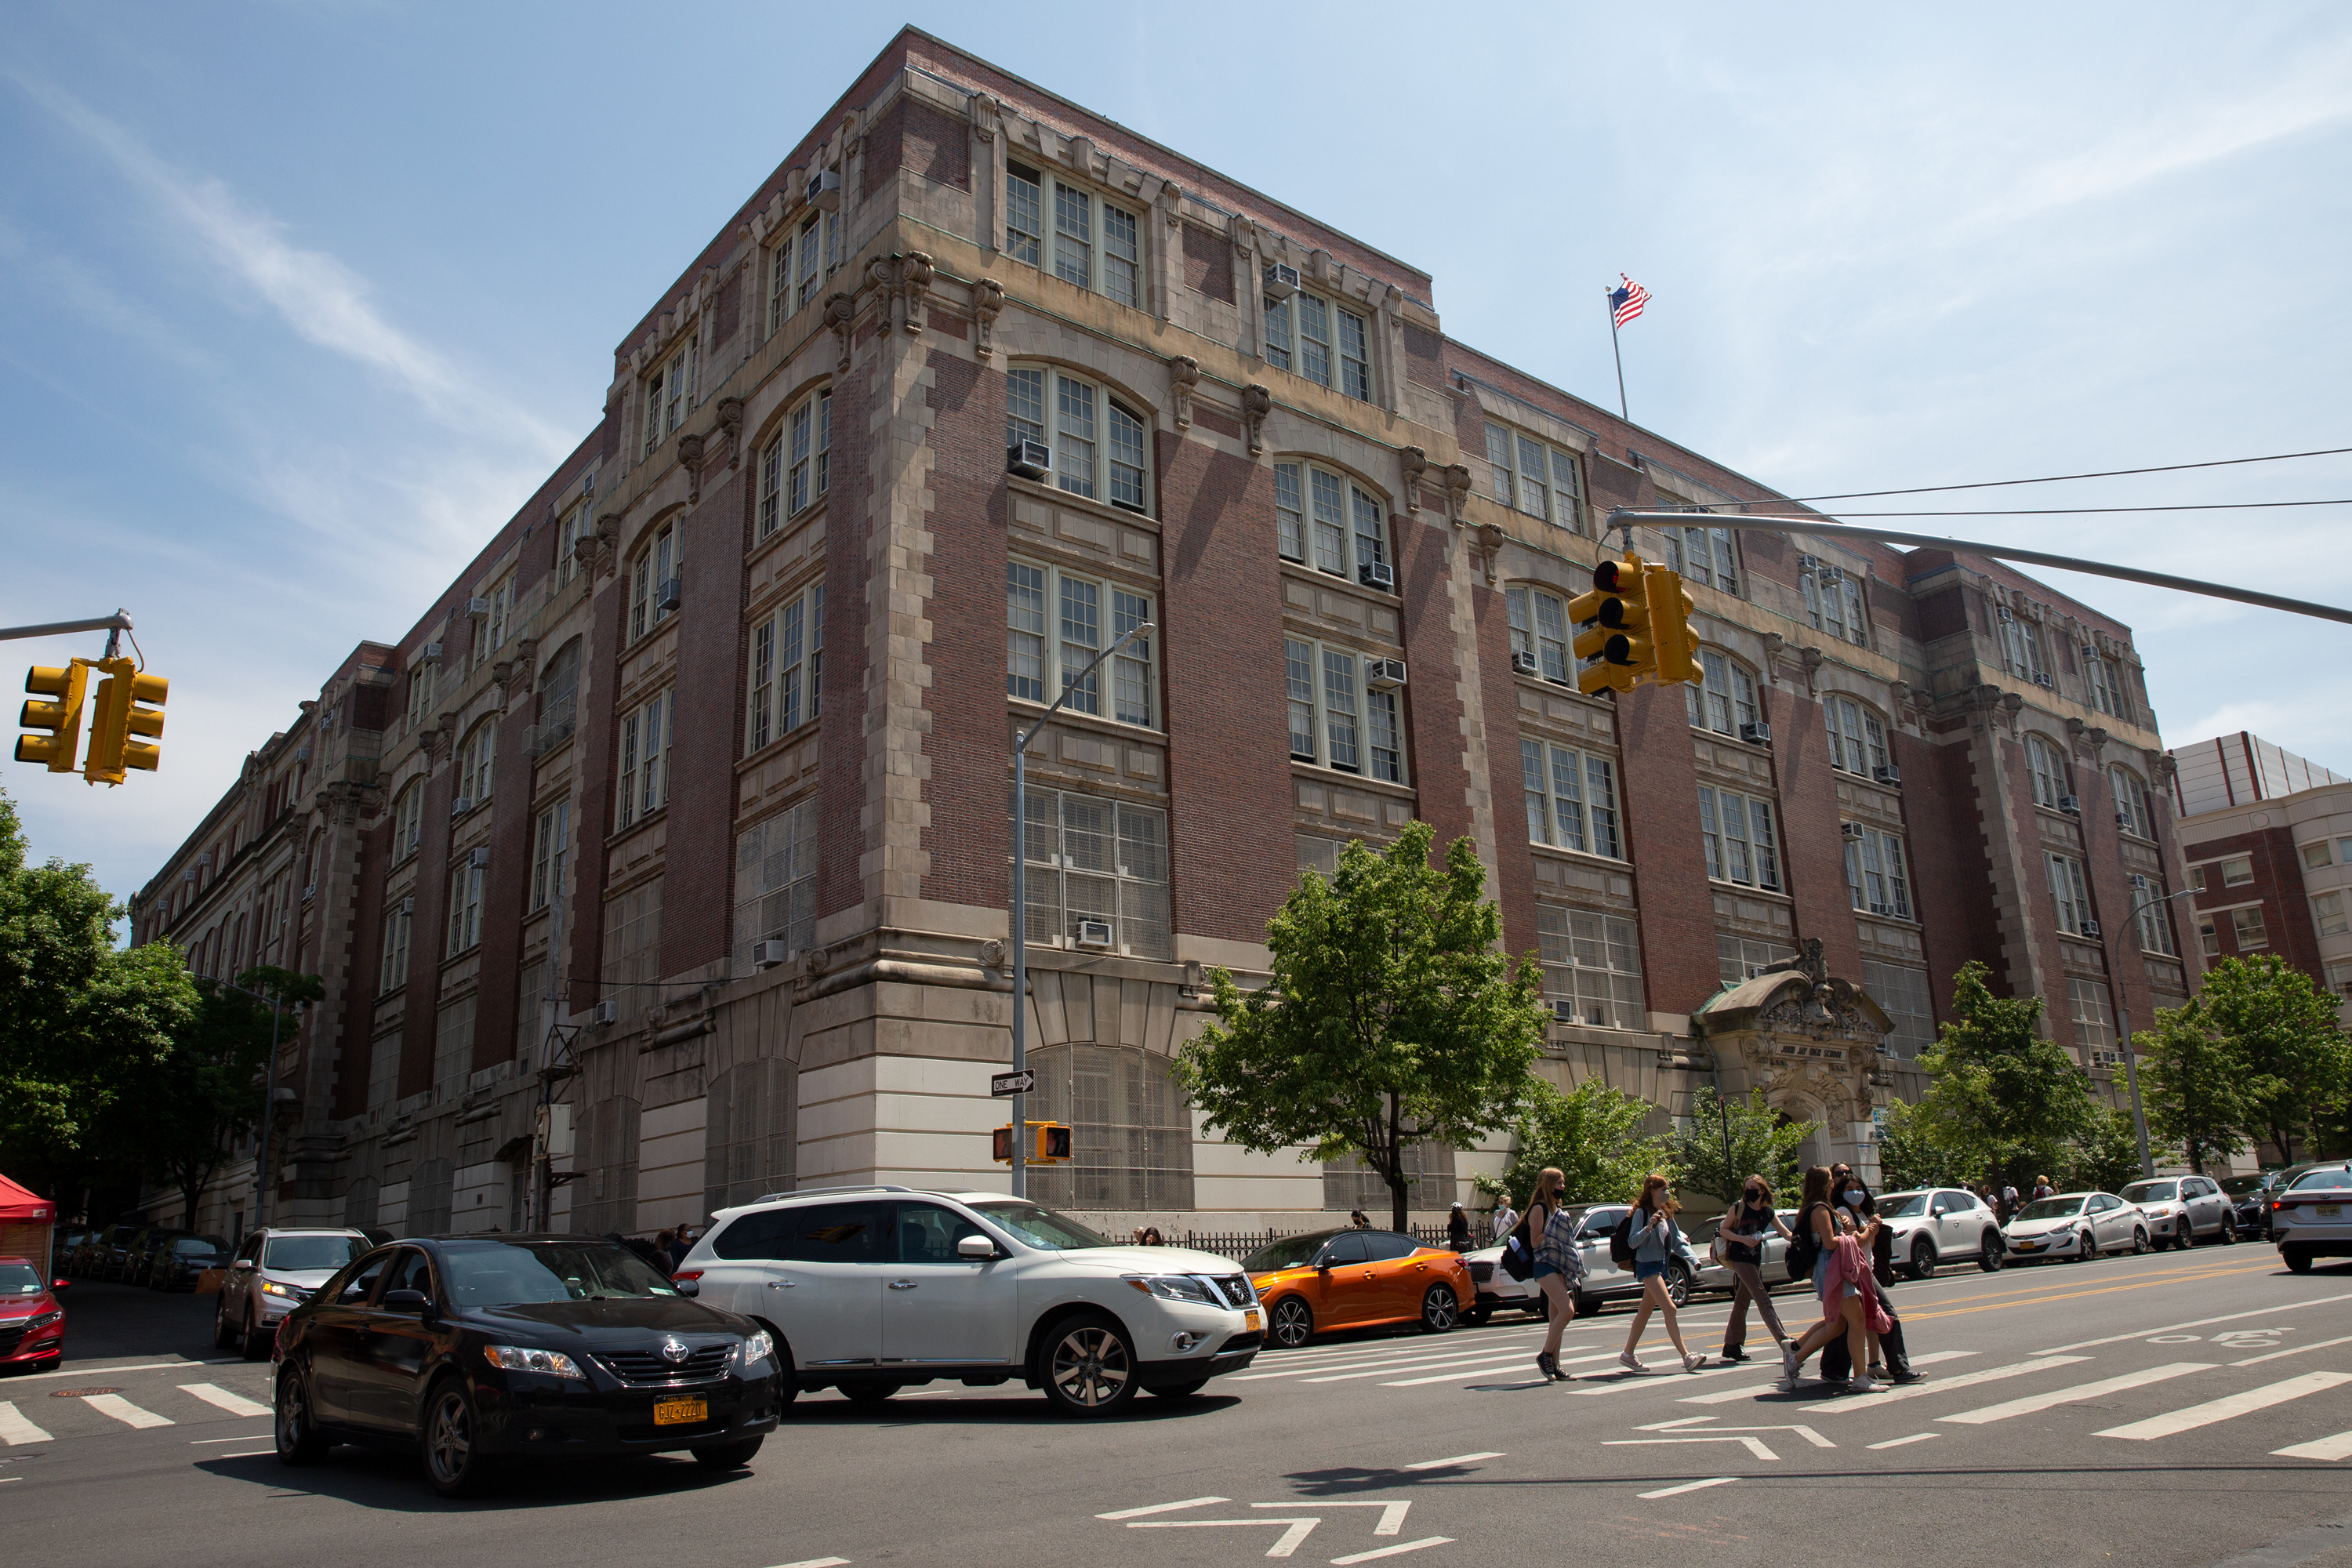 The John Jay education complex in Park Slope, Brooklyn, May 20, 2021.